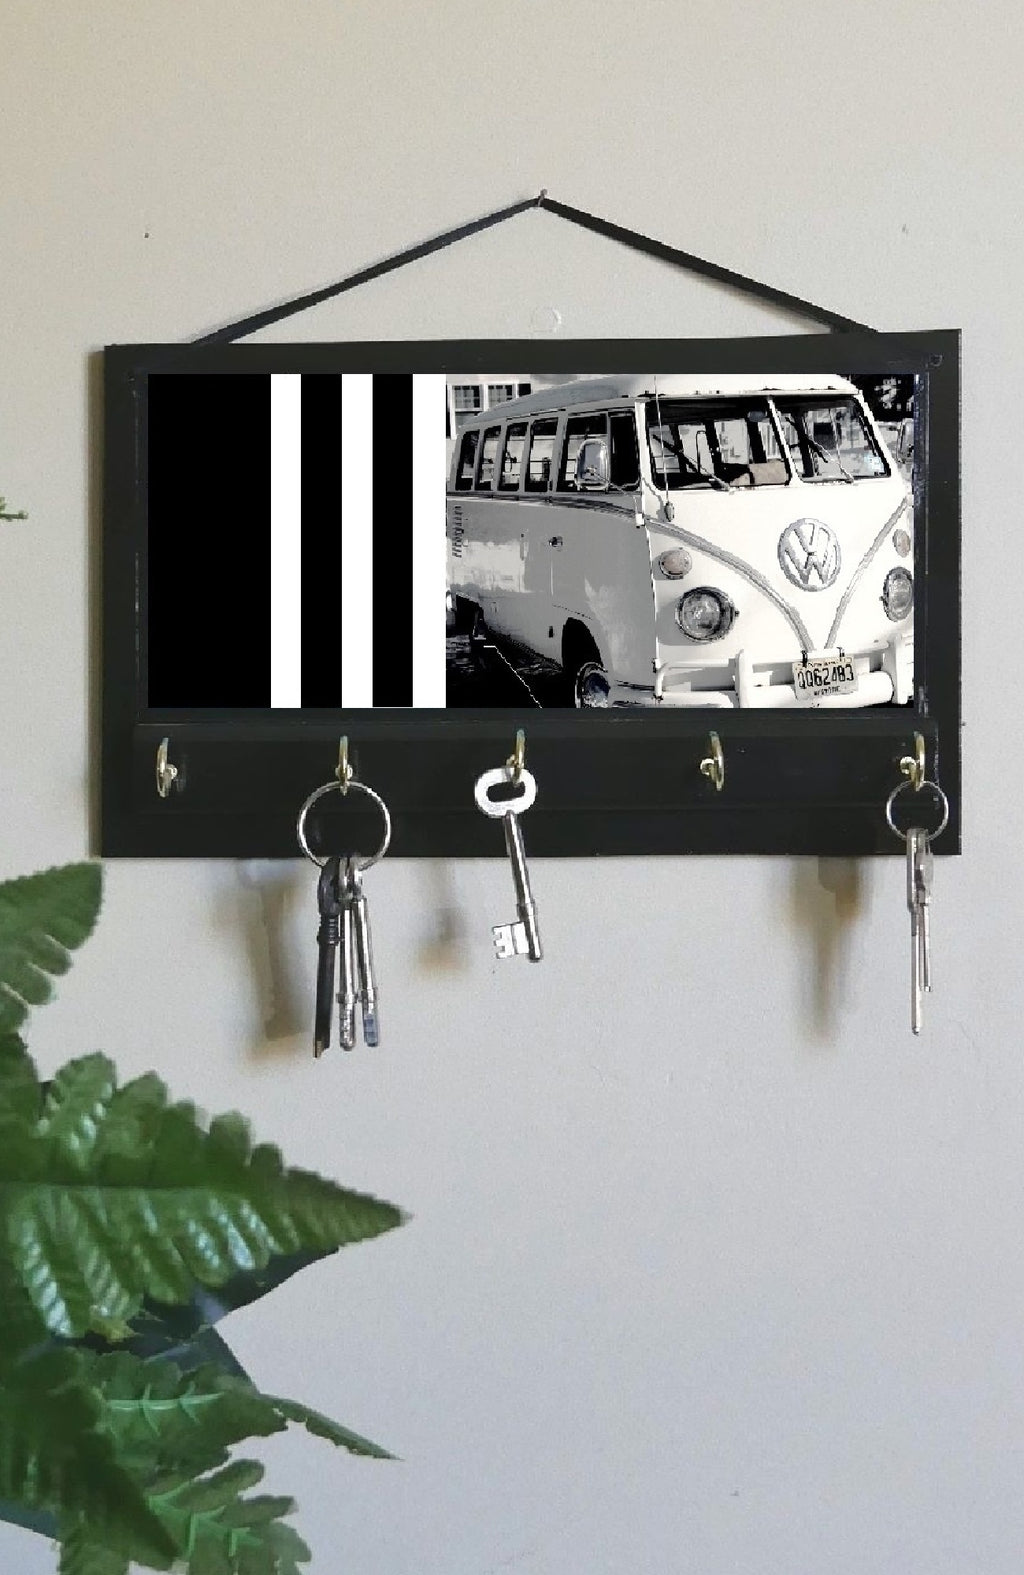 Kombi-Vans-Print-Key-Rack-Holder-Nchanted-Gifts